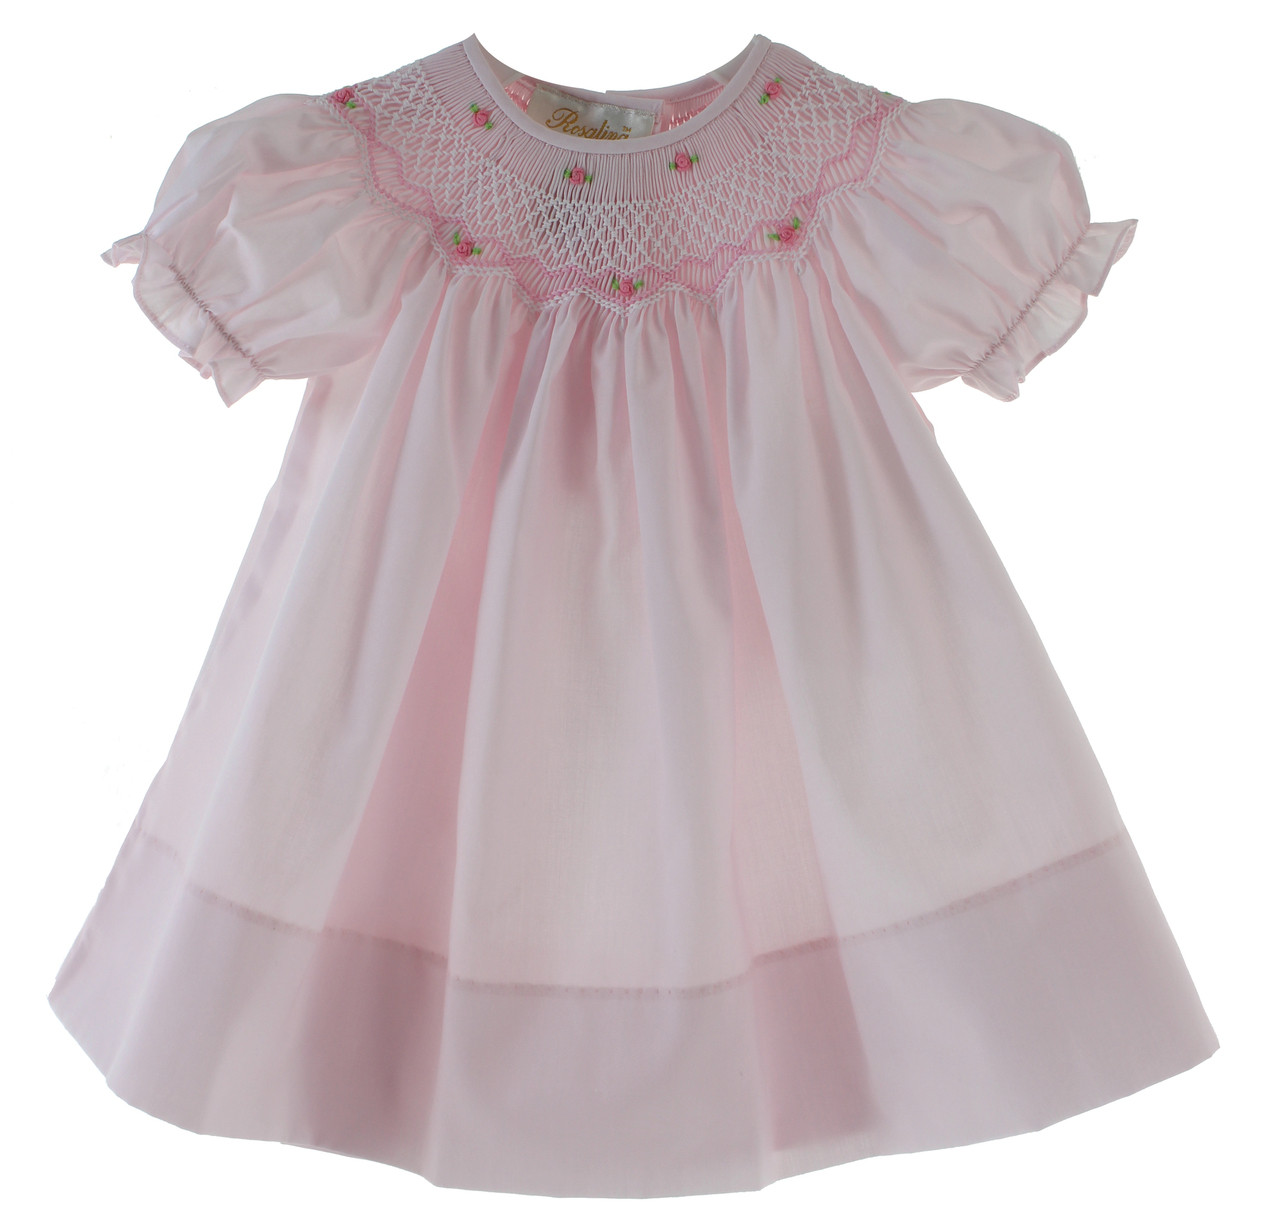 847d53cad2e35 Girls Pink Bishop Dress with Smocking | Rosalina Baby Clothes